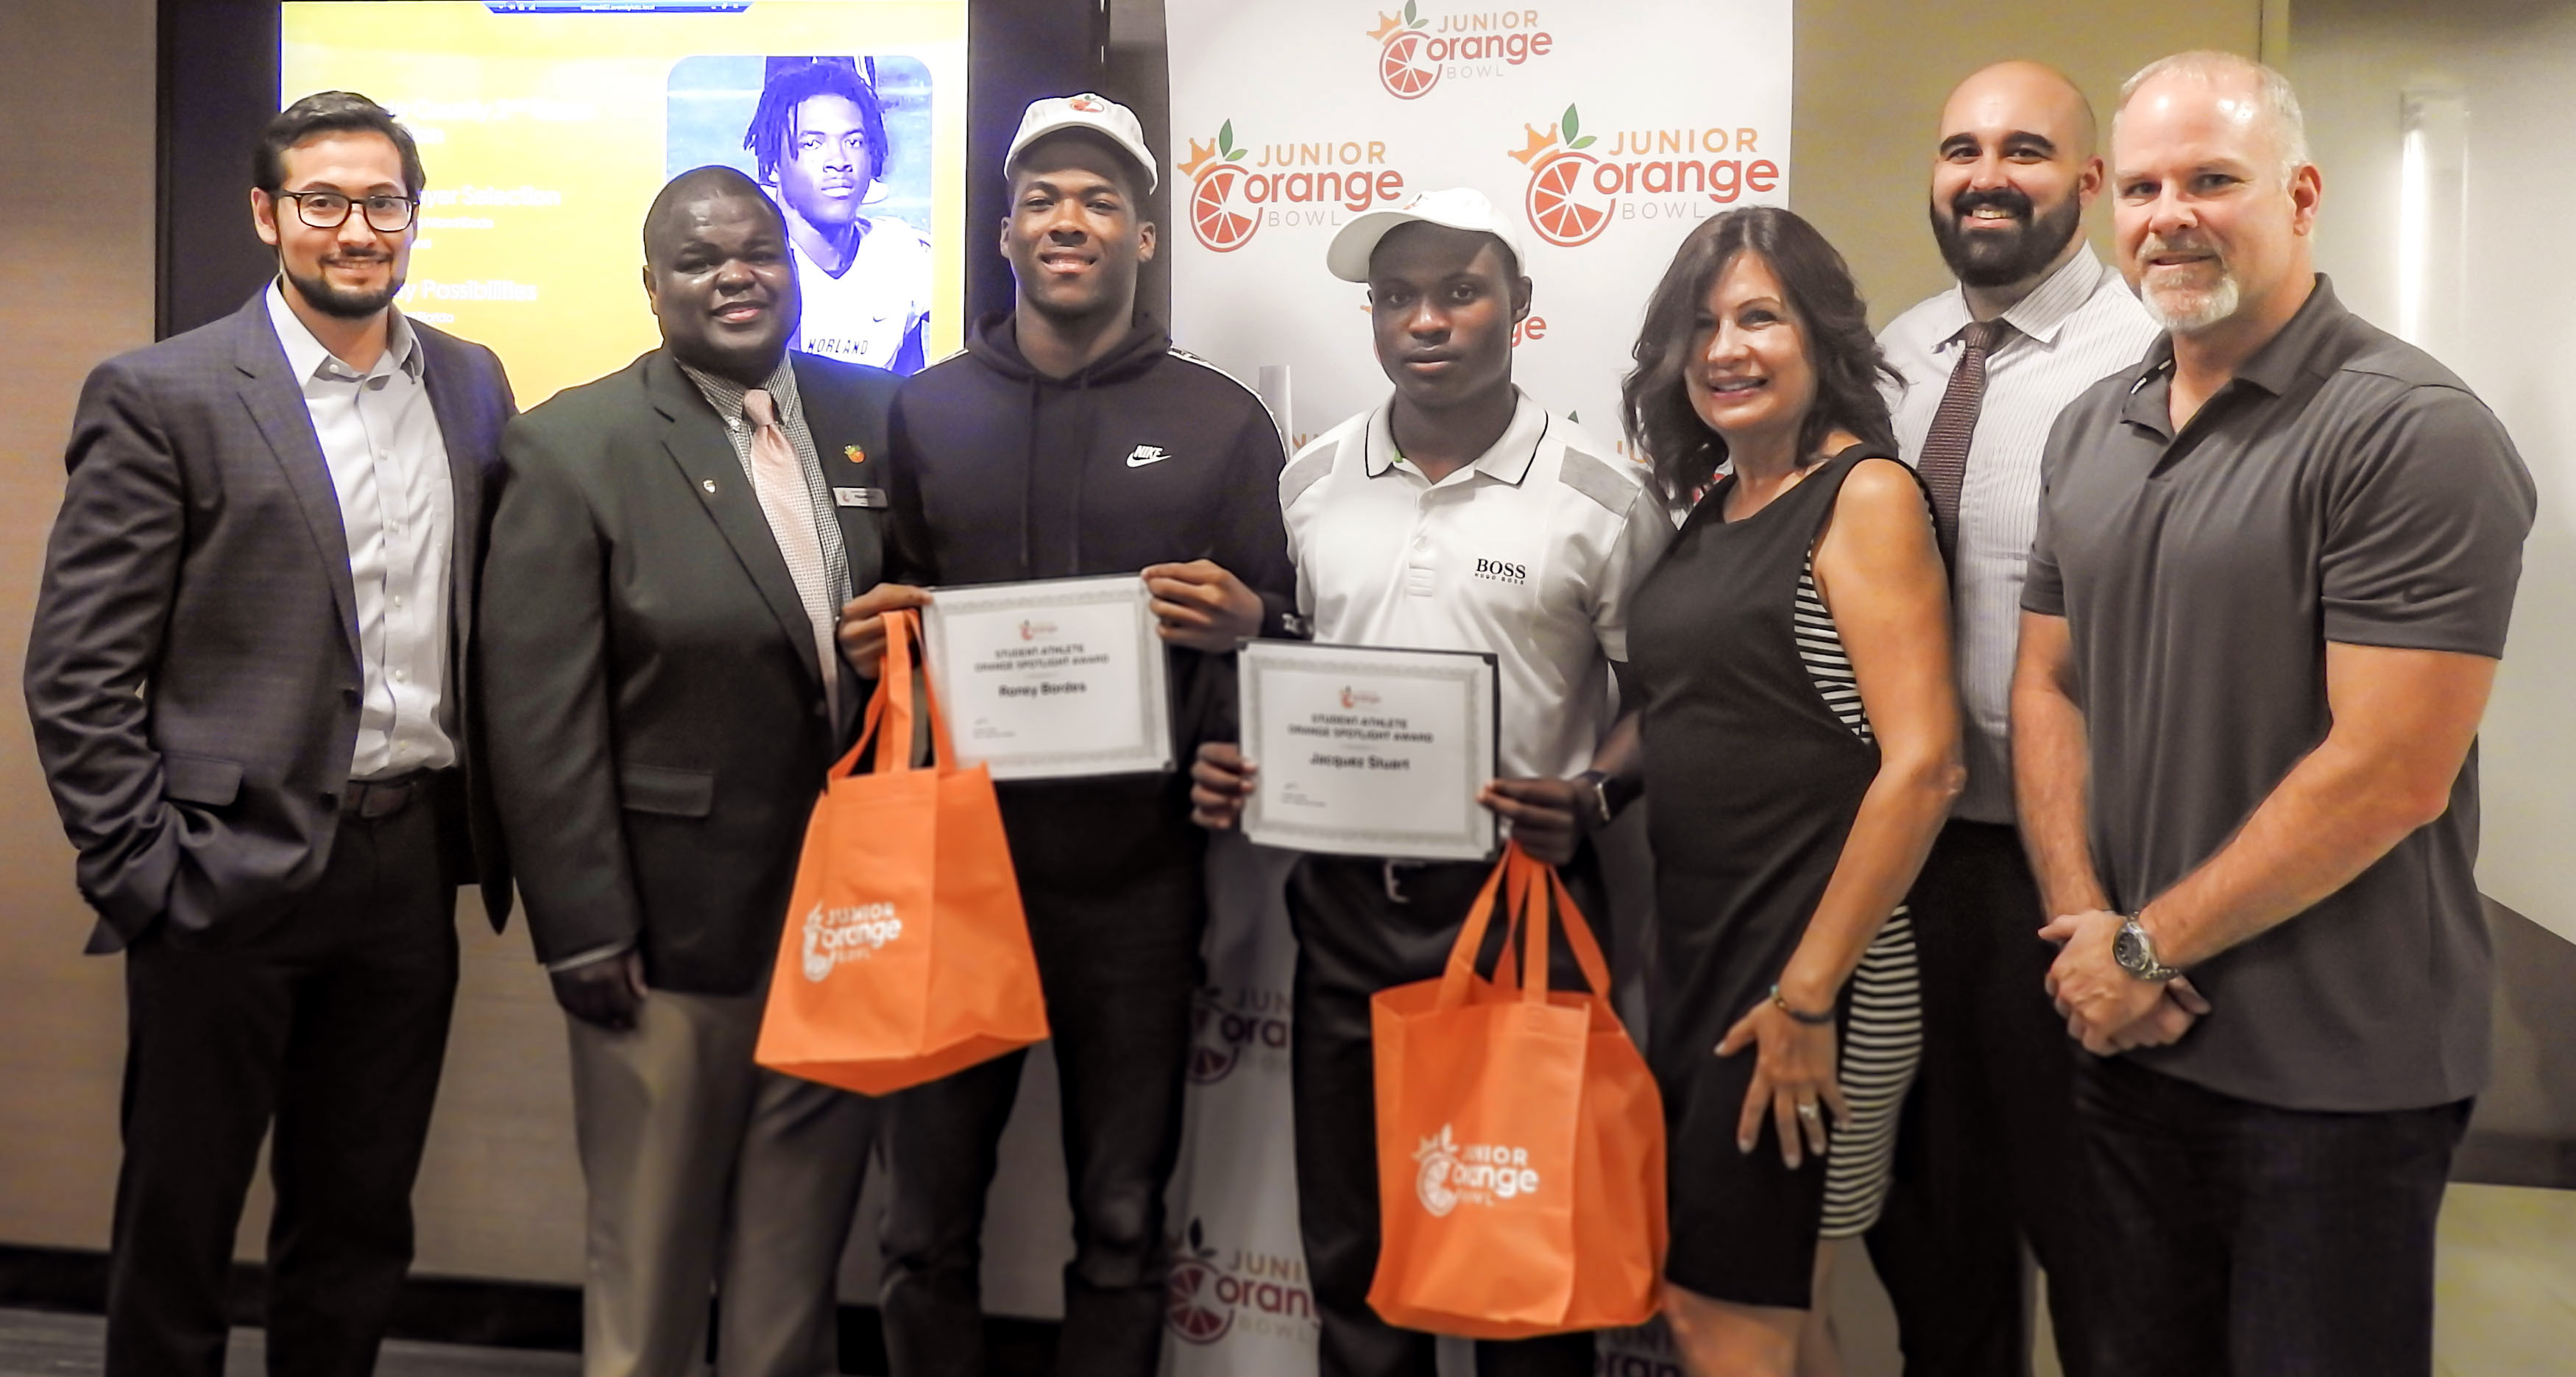 Inaugural Student-Athlete Orange Spotlight Award